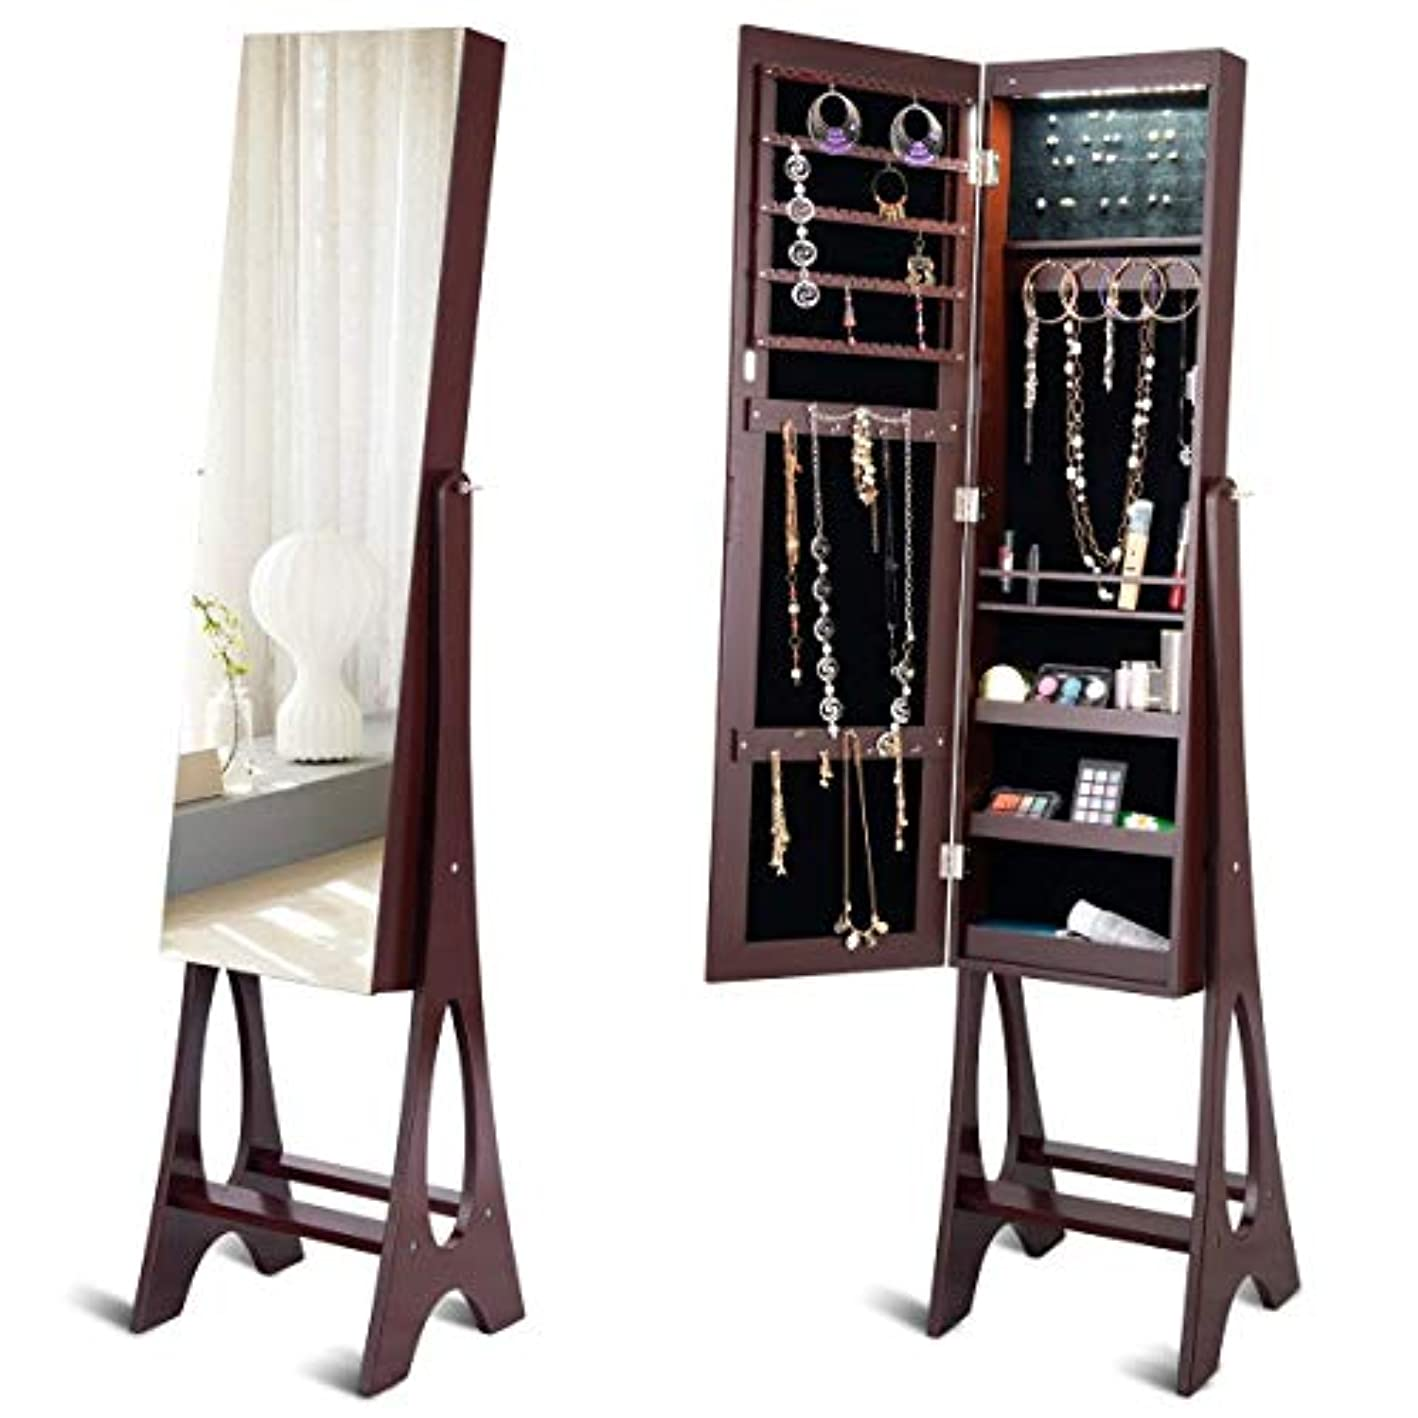 Giantex 12 LED Jewelry Armoire Cabinet with Mirror, Auto-On Lights Frameless 12.5